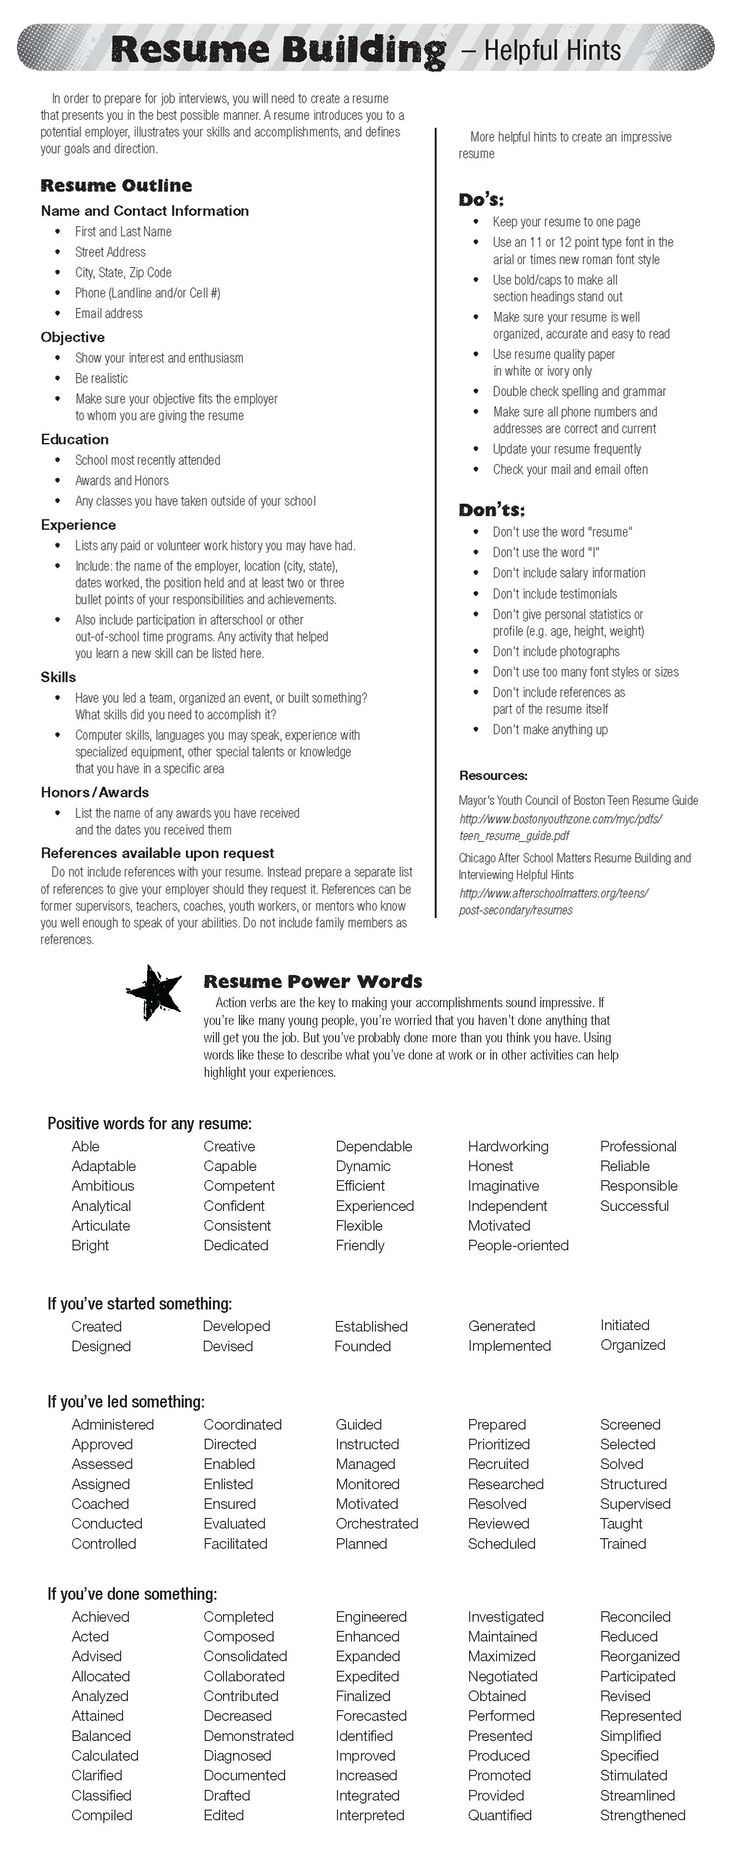 Opposenewapstandardsus  Pleasing  Ideas About Resume On Pinterest  Cv Format Resume  With Glamorous Check Out Todays Resume Building Tips Resume Resumepowerwords With Divine Cna Sample Resume Also Resume From Linkedin In Addition Create My Resume And Buyer Resume As Well As Resume Job Additionally Functional Resume Samples From Pinterestcom With Opposenewapstandardsus  Glamorous  Ideas About Resume On Pinterest  Cv Format Resume  With Divine Check Out Todays Resume Building Tips Resume Resumepowerwords And Pleasing Cna Sample Resume Also Resume From Linkedin In Addition Create My Resume From Pinterestcom